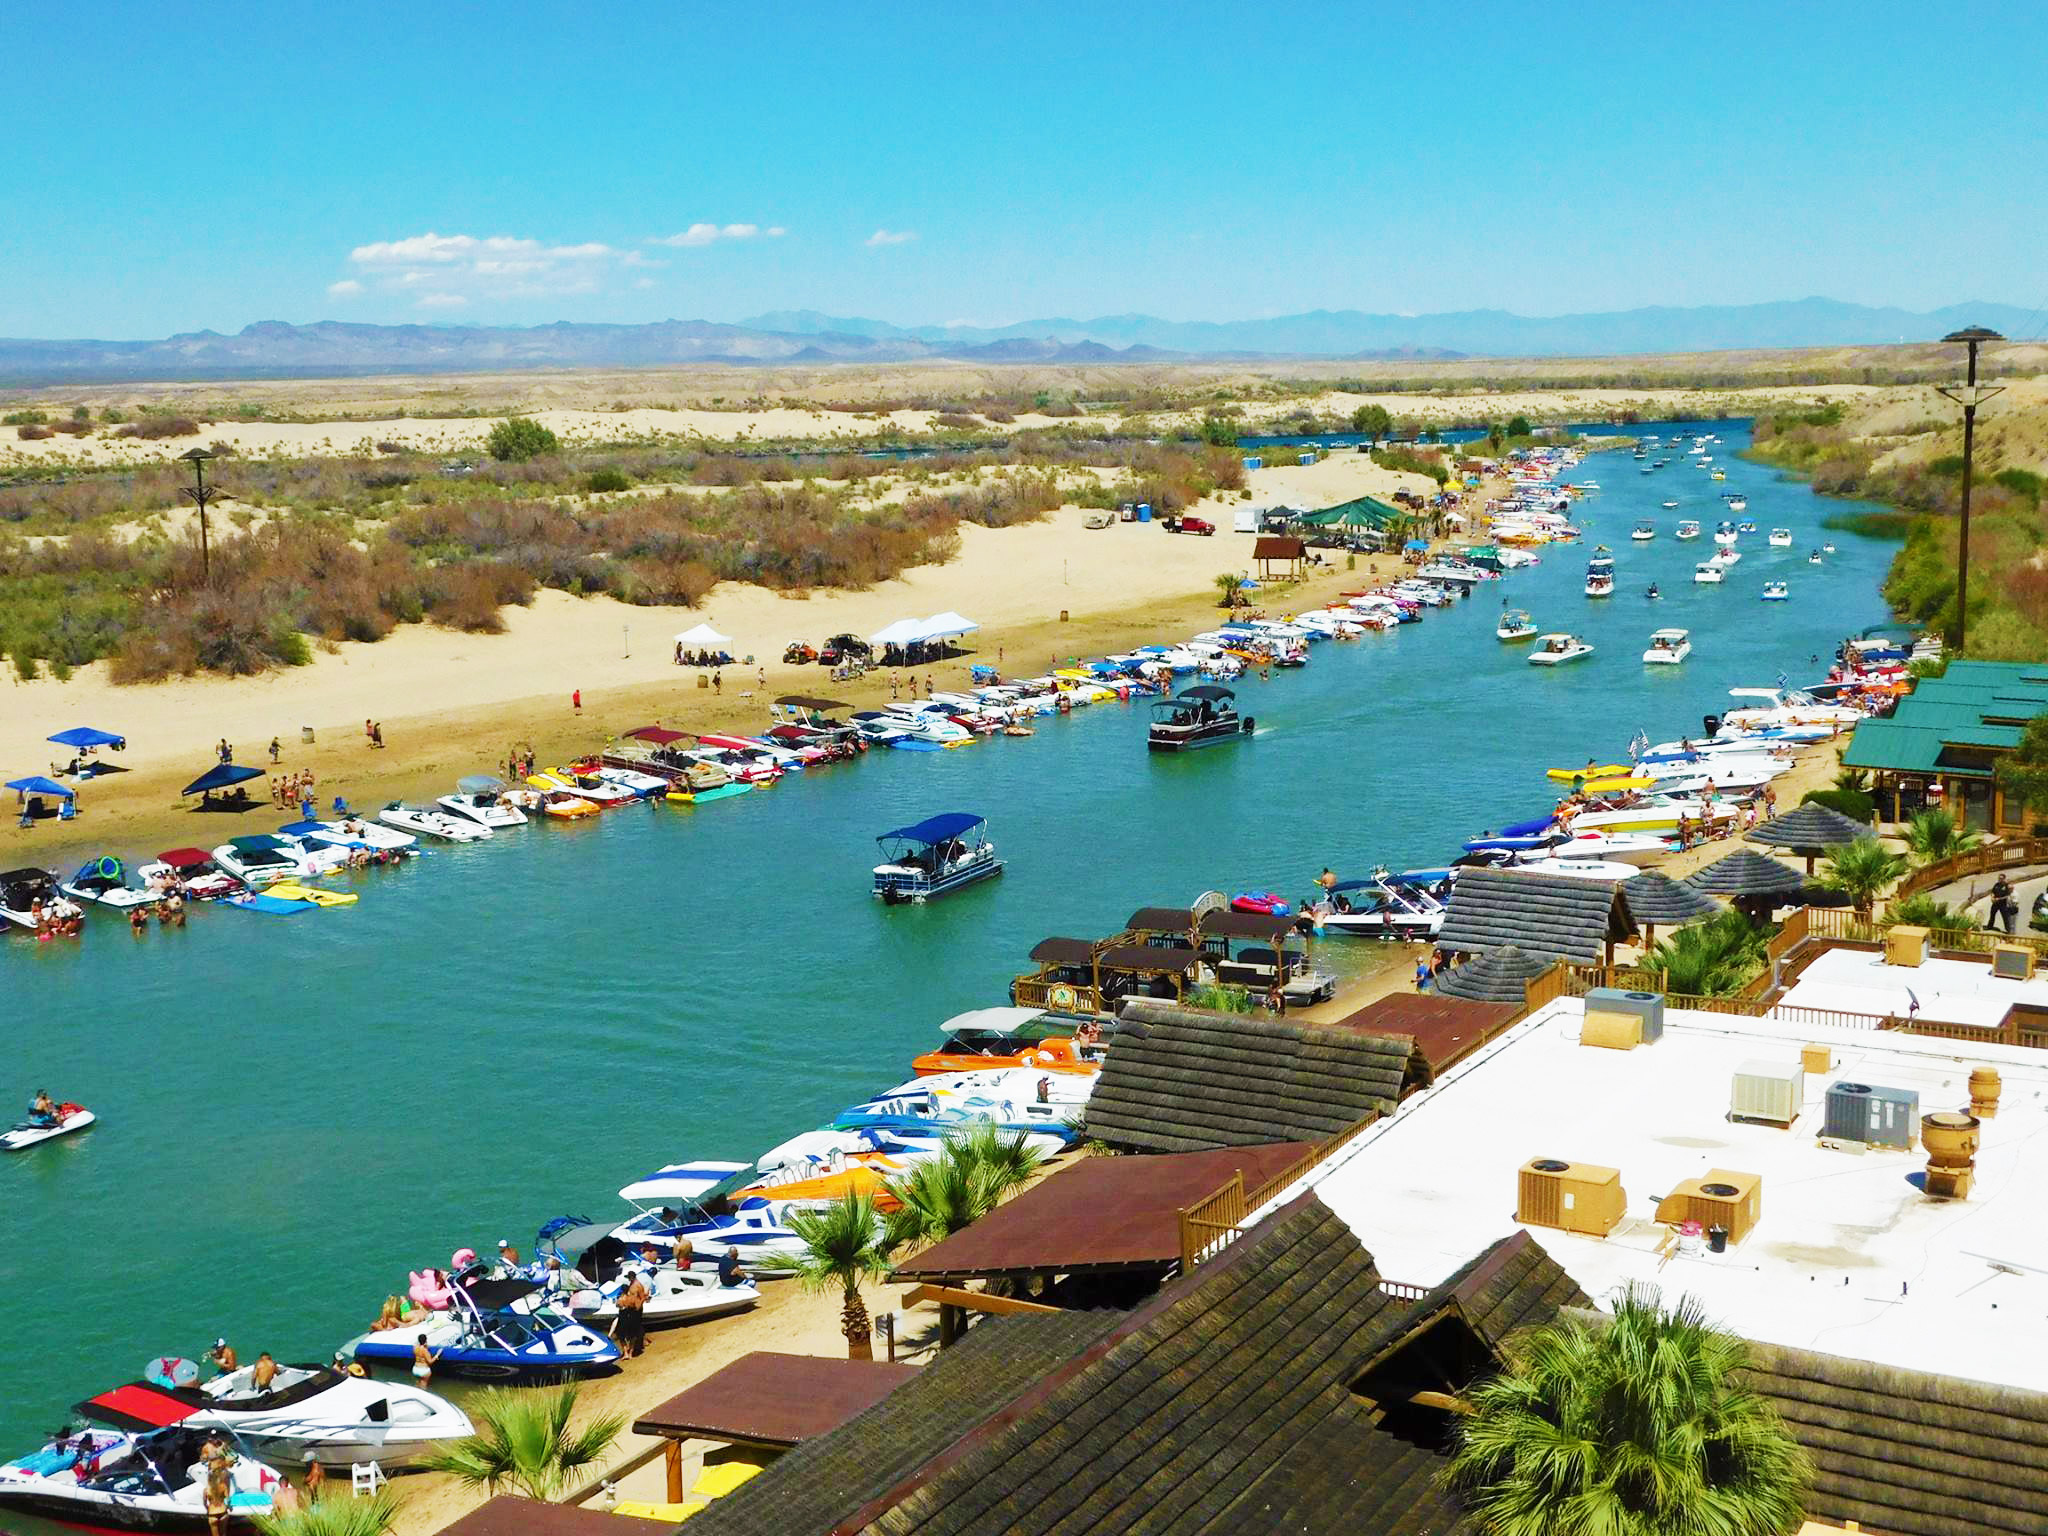 Pirates Cove Resort Lake Havasu